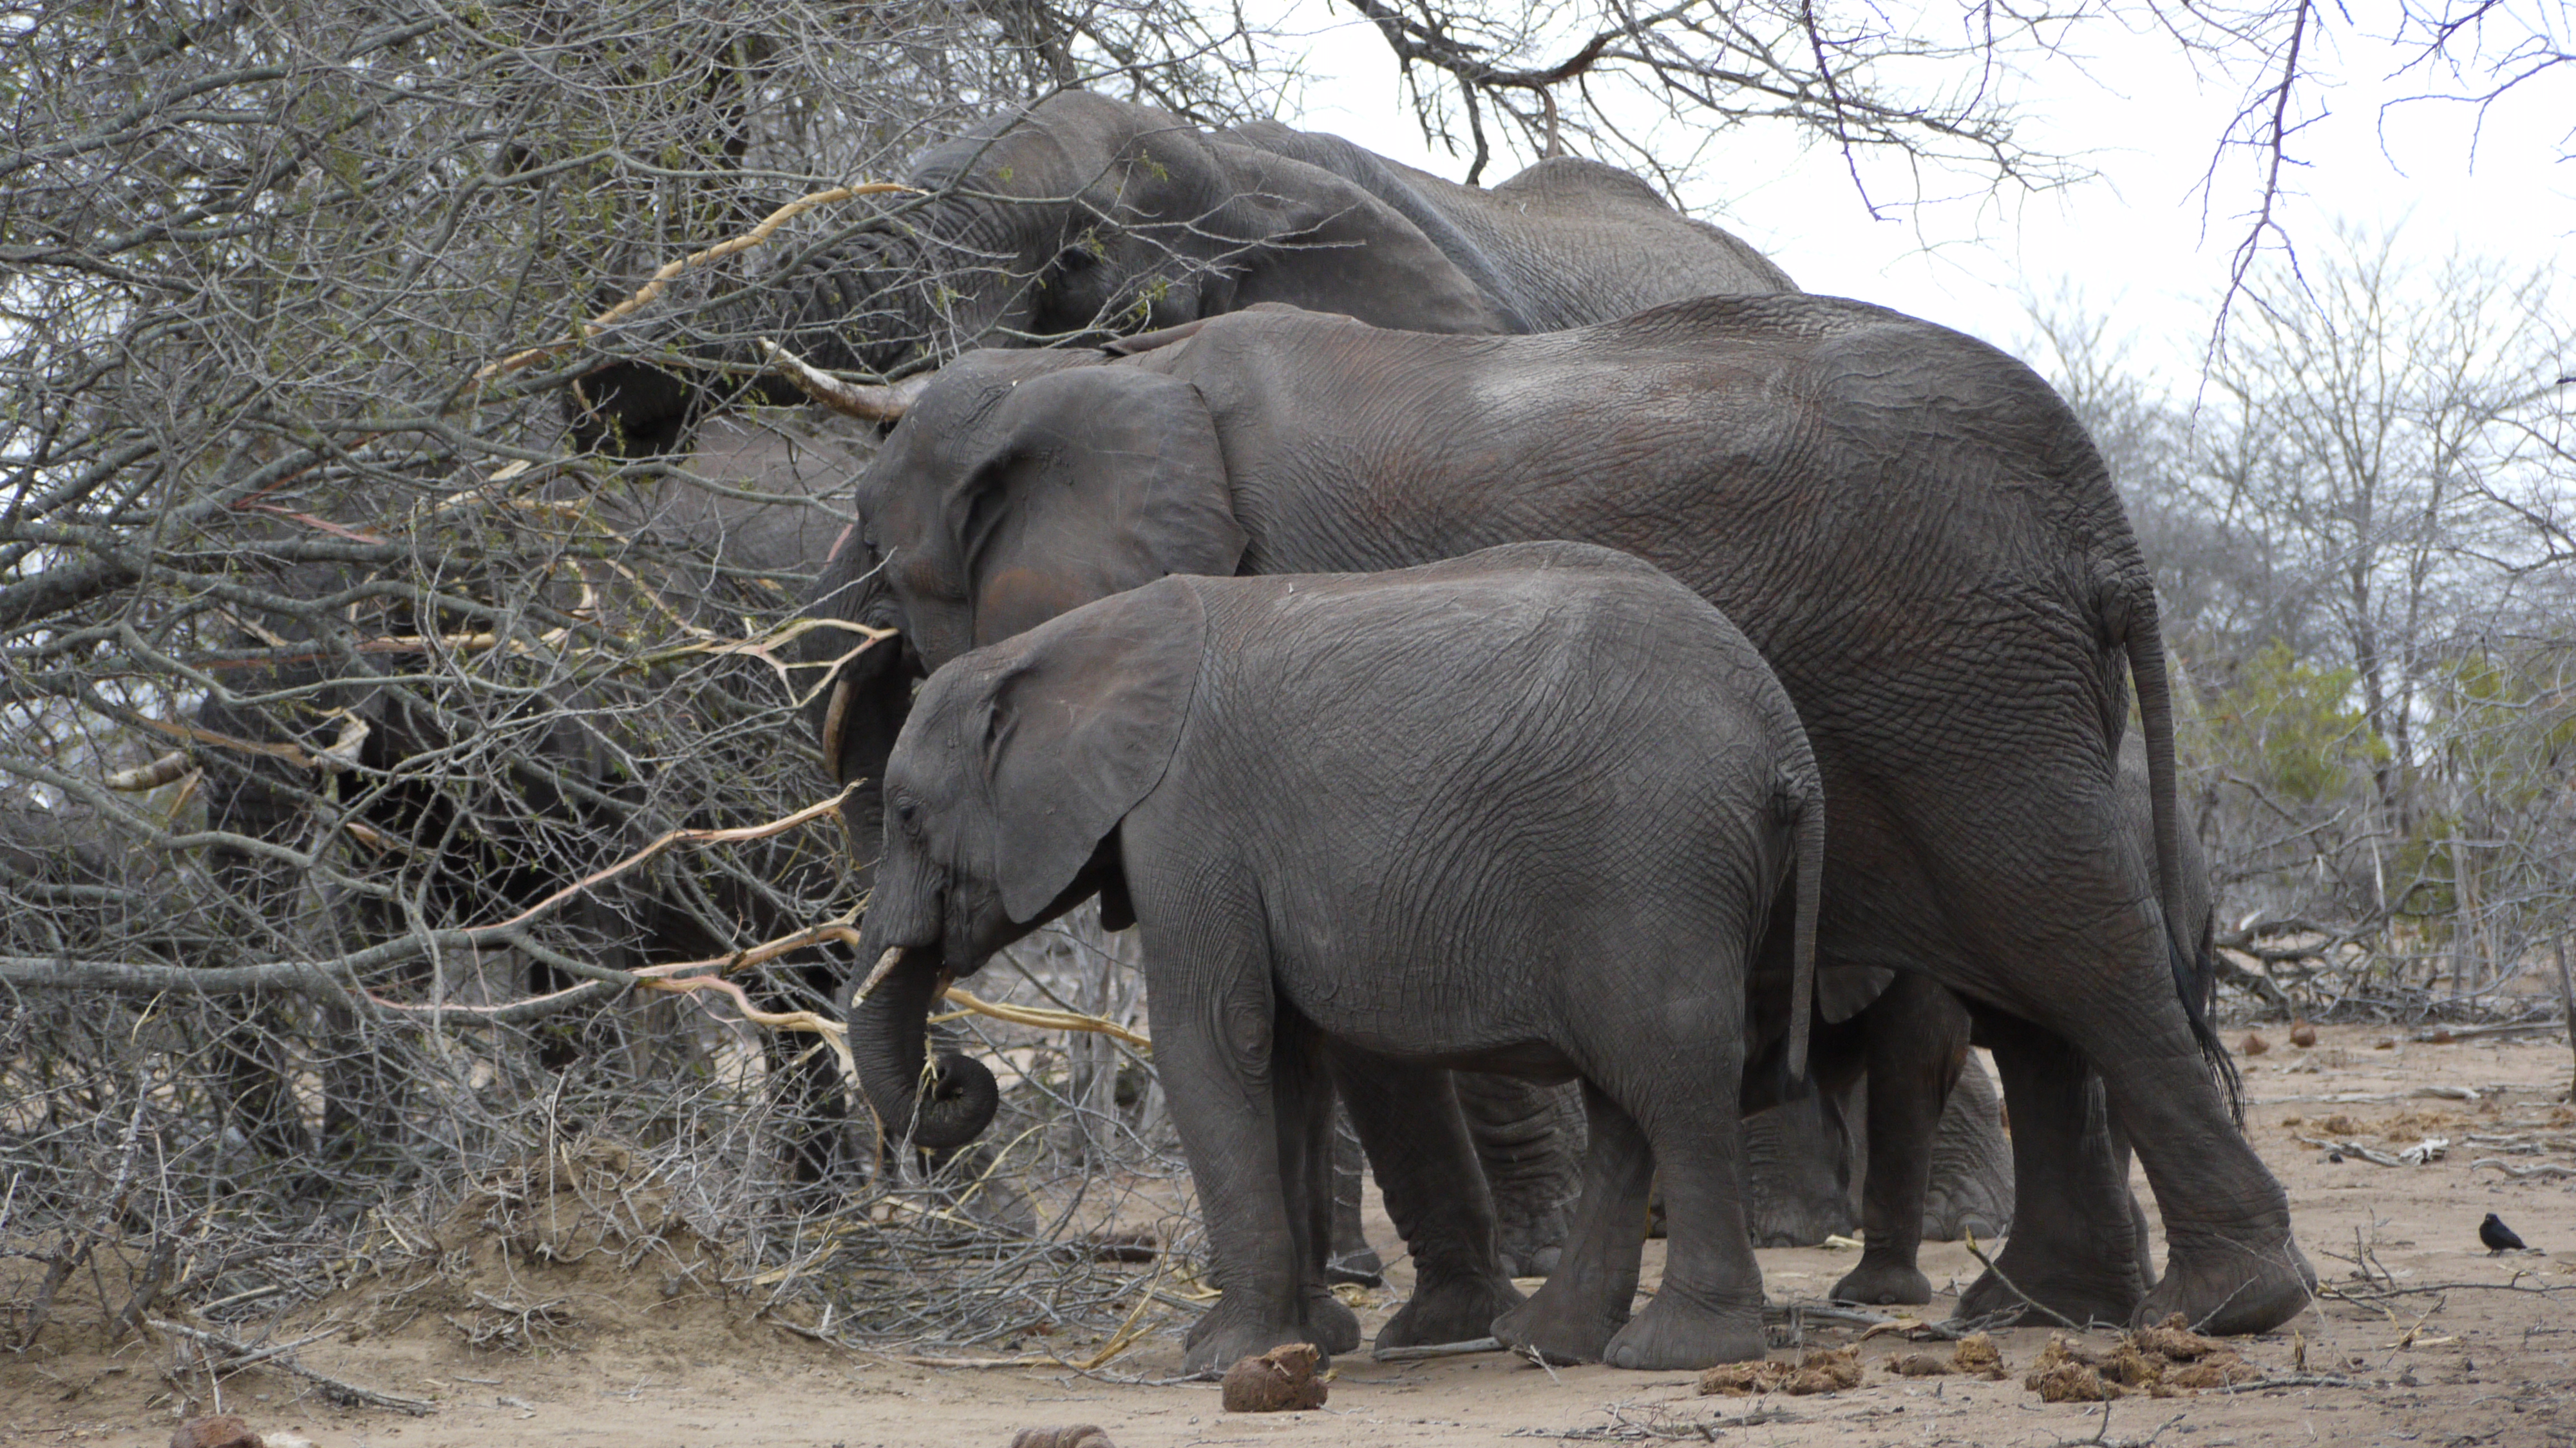 Elephants in the Kruger